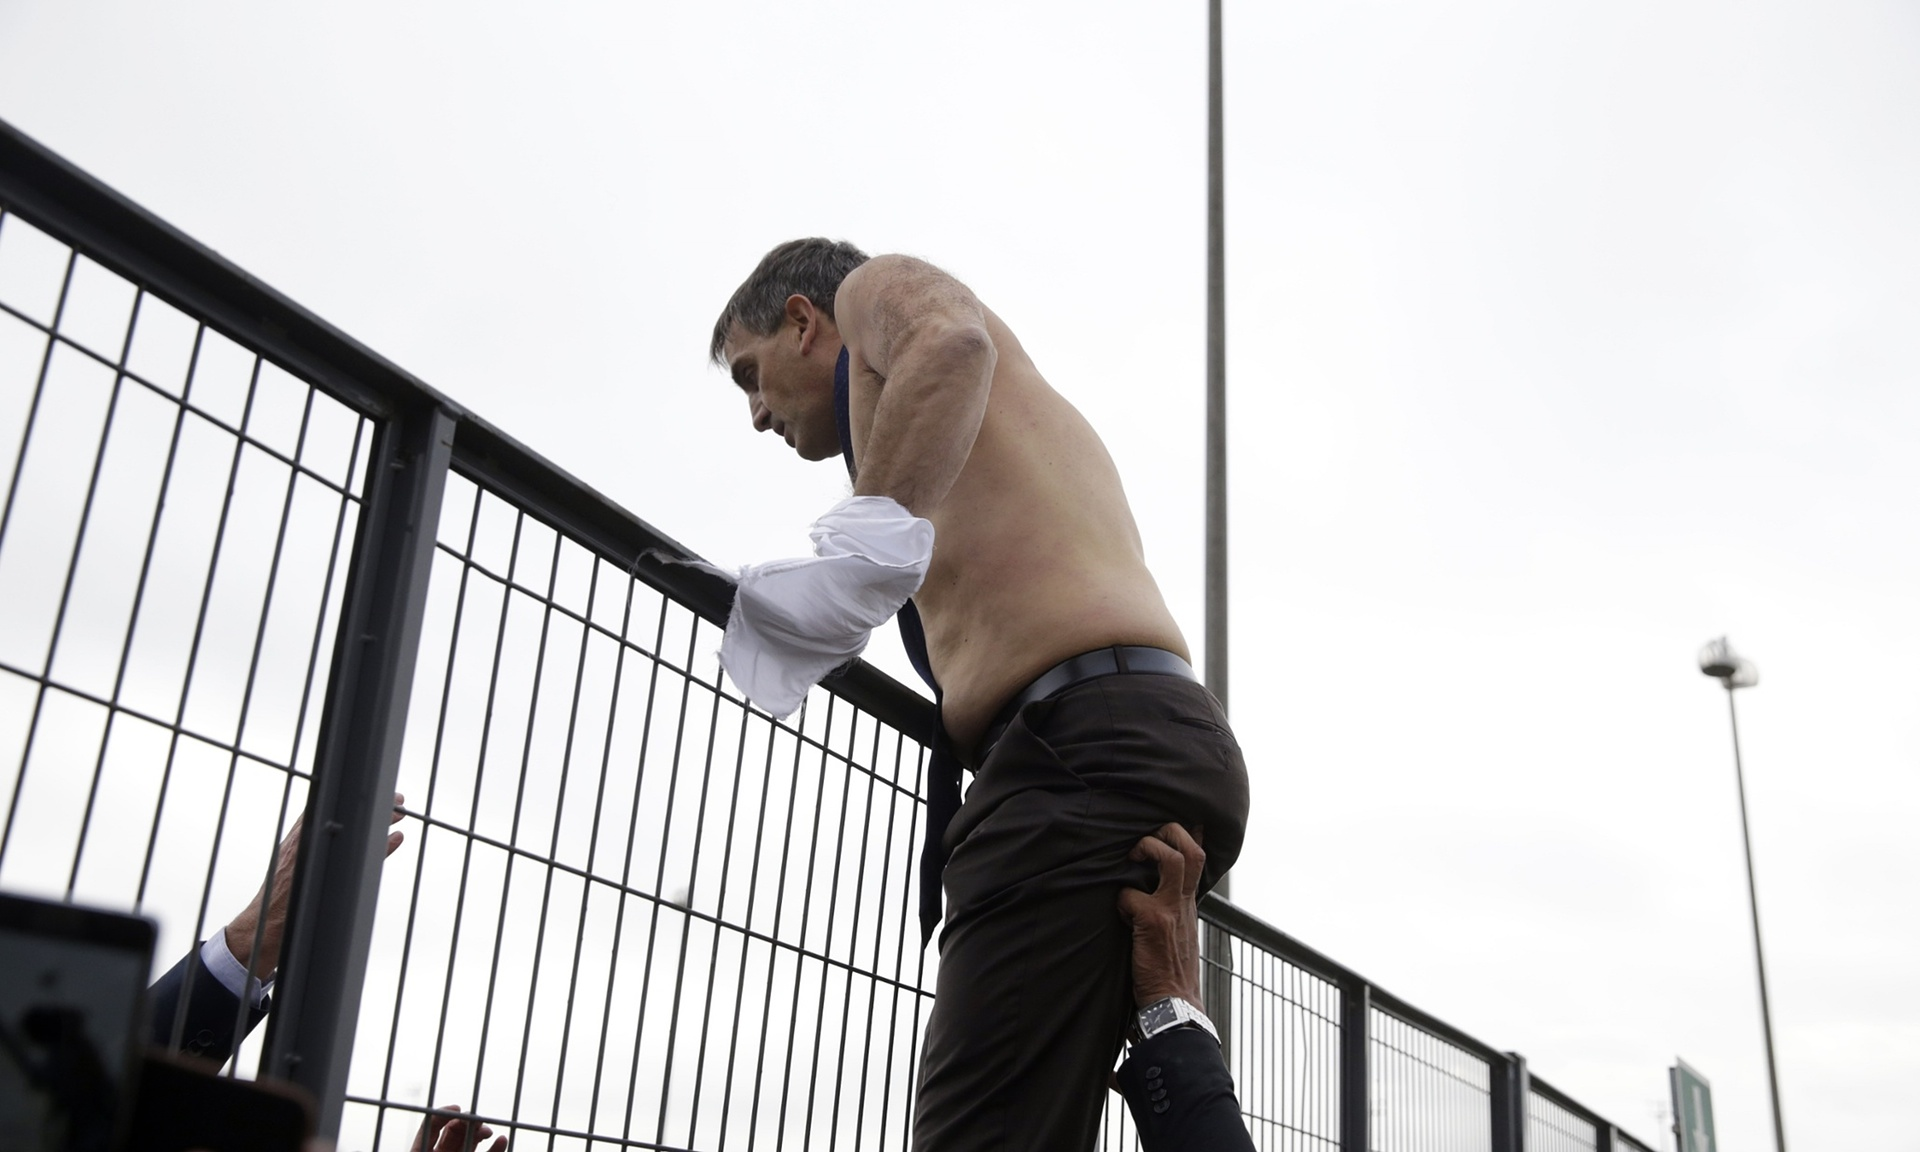 Air France HR boss escapes half naked over a fence to avoid the workers' fury.